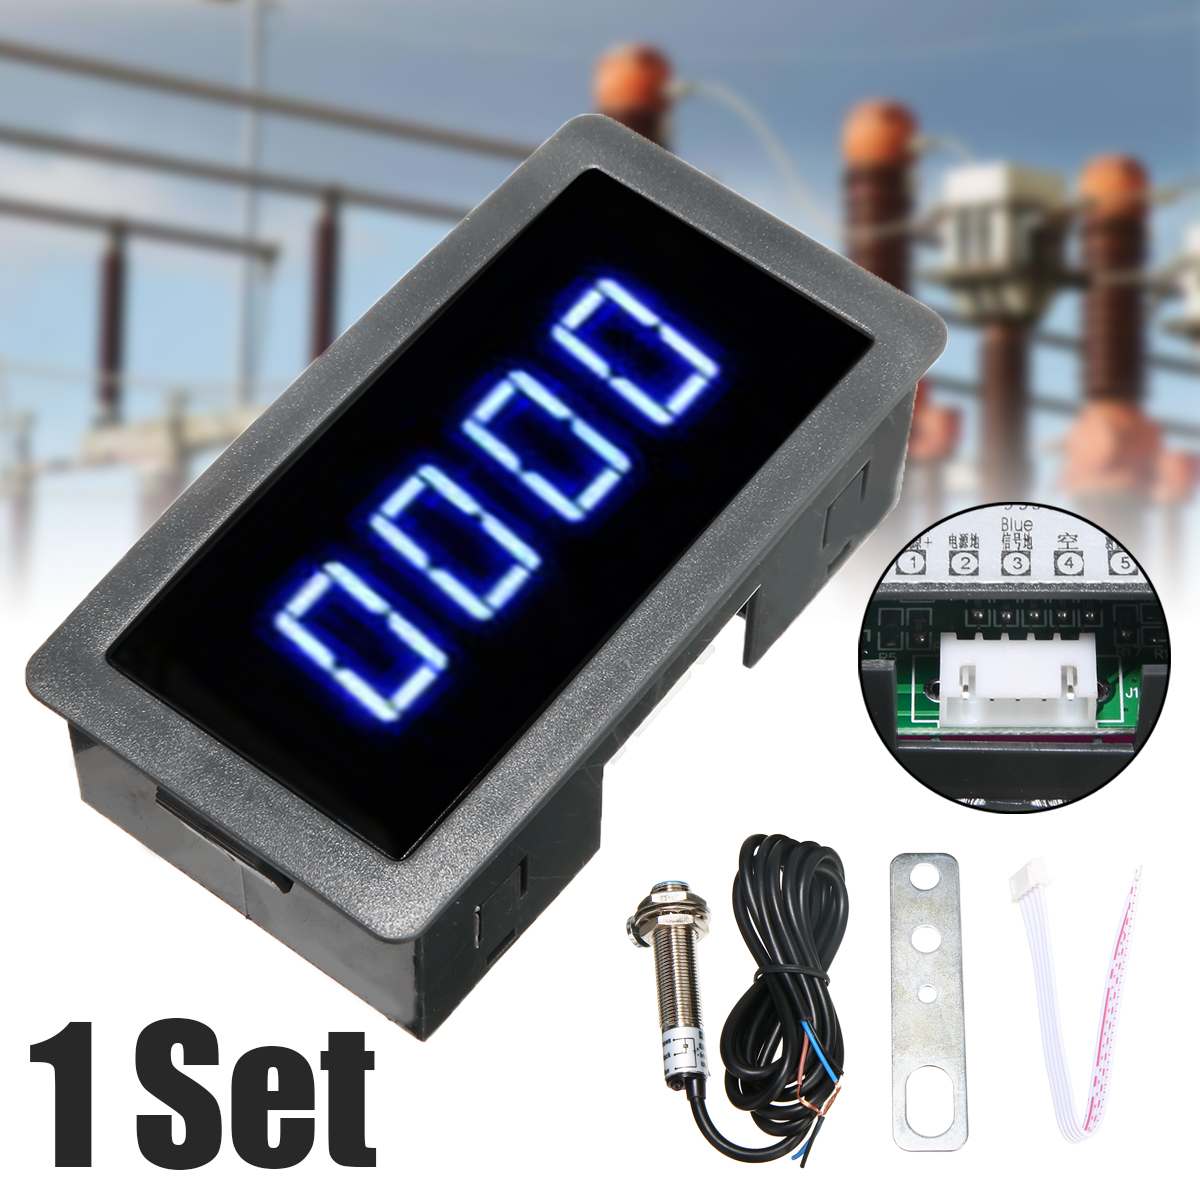 1set High Accuracy Blue 4 Digital Led Display Tachometer Rpm Speed Meter + Hall Proximity Switch Sensor 12v 30ma Good For Energy And The Spleen